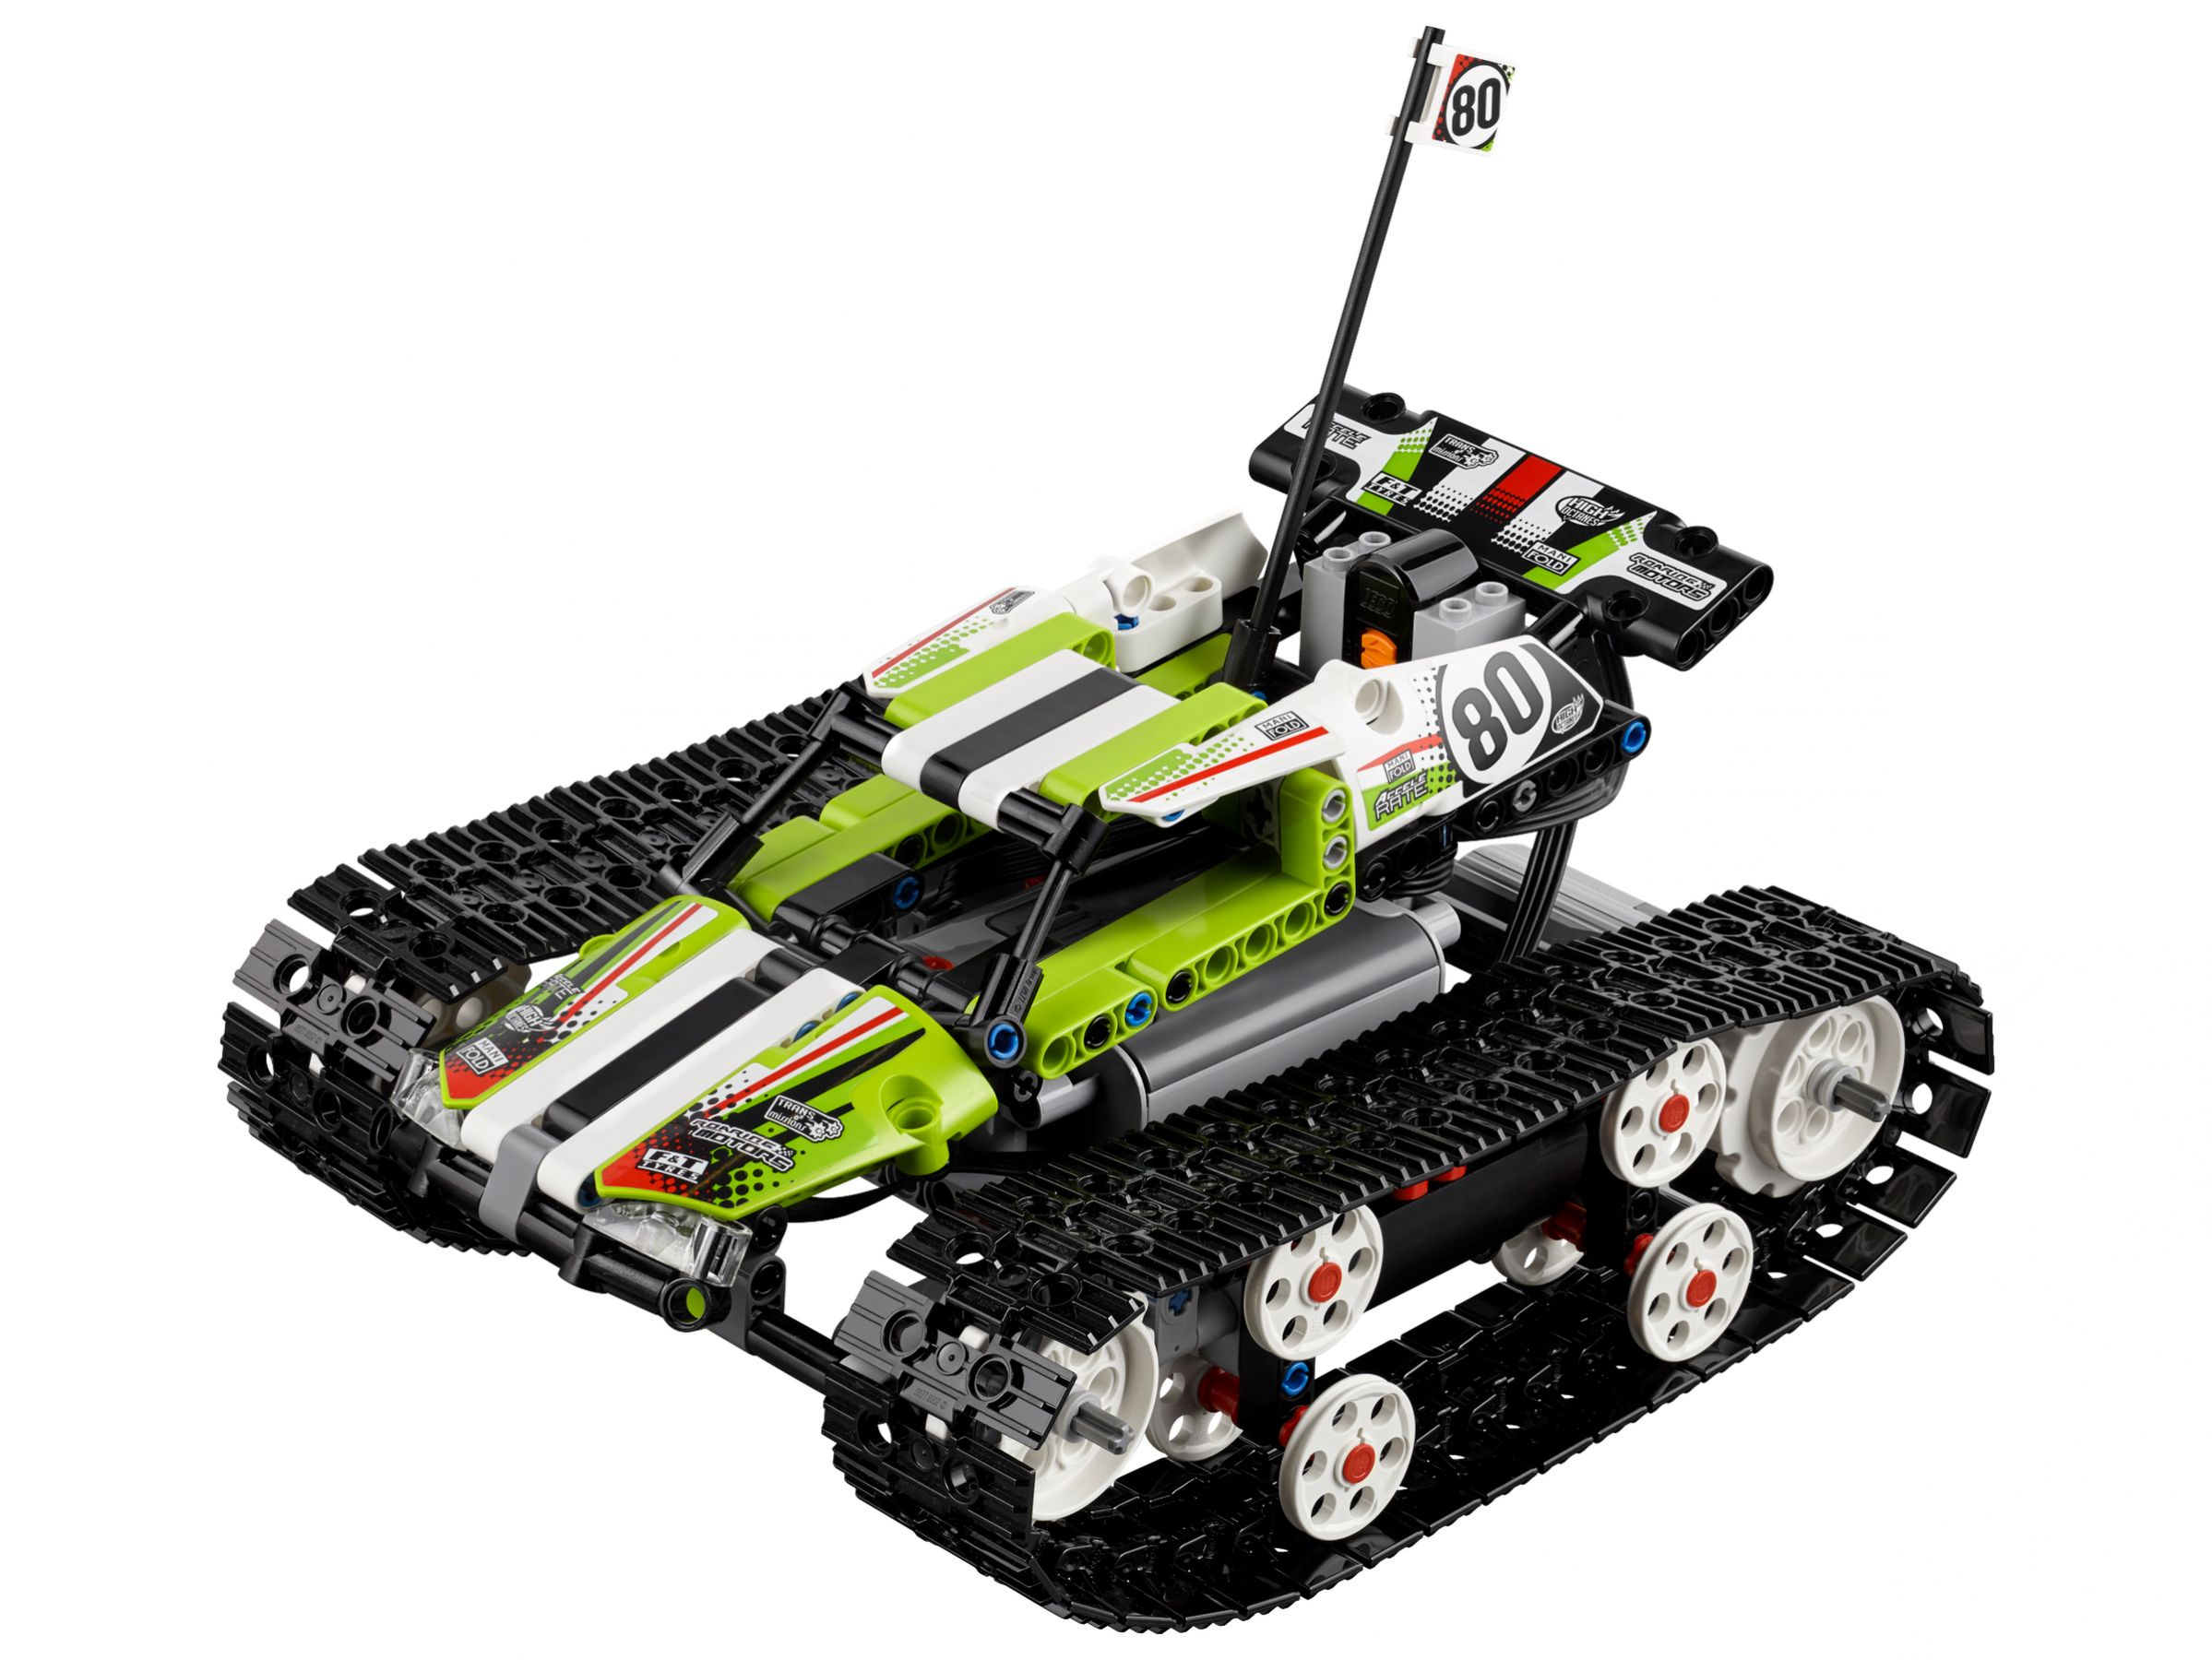 lego 42065 ferngesteuerter tracked racer technic 2017 rc tracked racer brickmerge. Black Bedroom Furniture Sets. Home Design Ideas